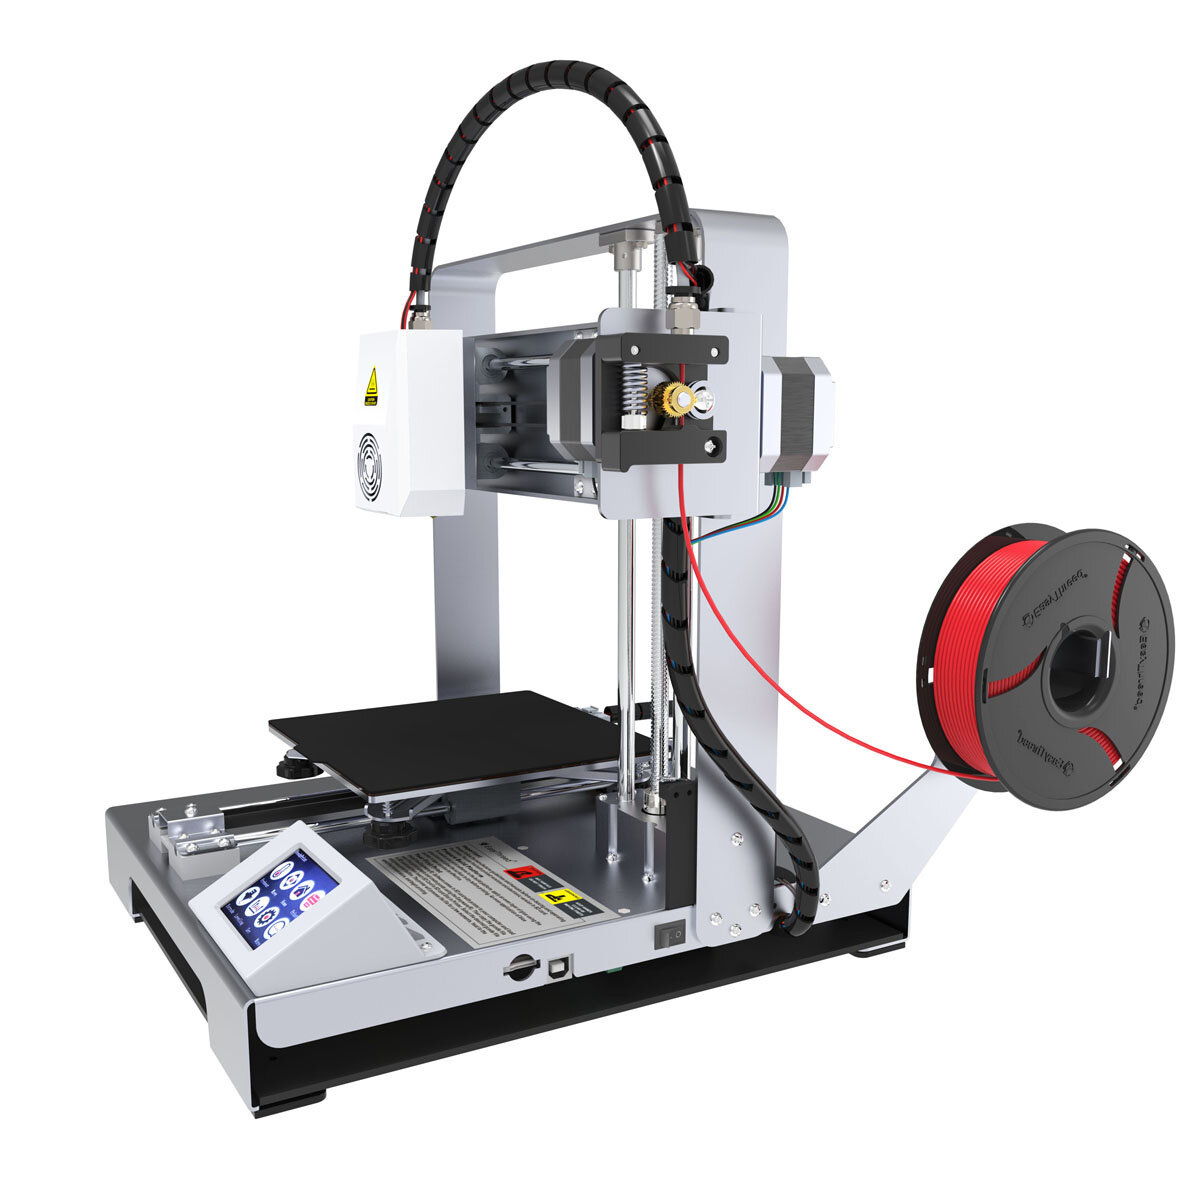 Easythreed X6 Desktop Portable DIY 3D Printer Kit 140*140*140mm Print Size with Hotbed 1.75mm 0.4mm Nozzle